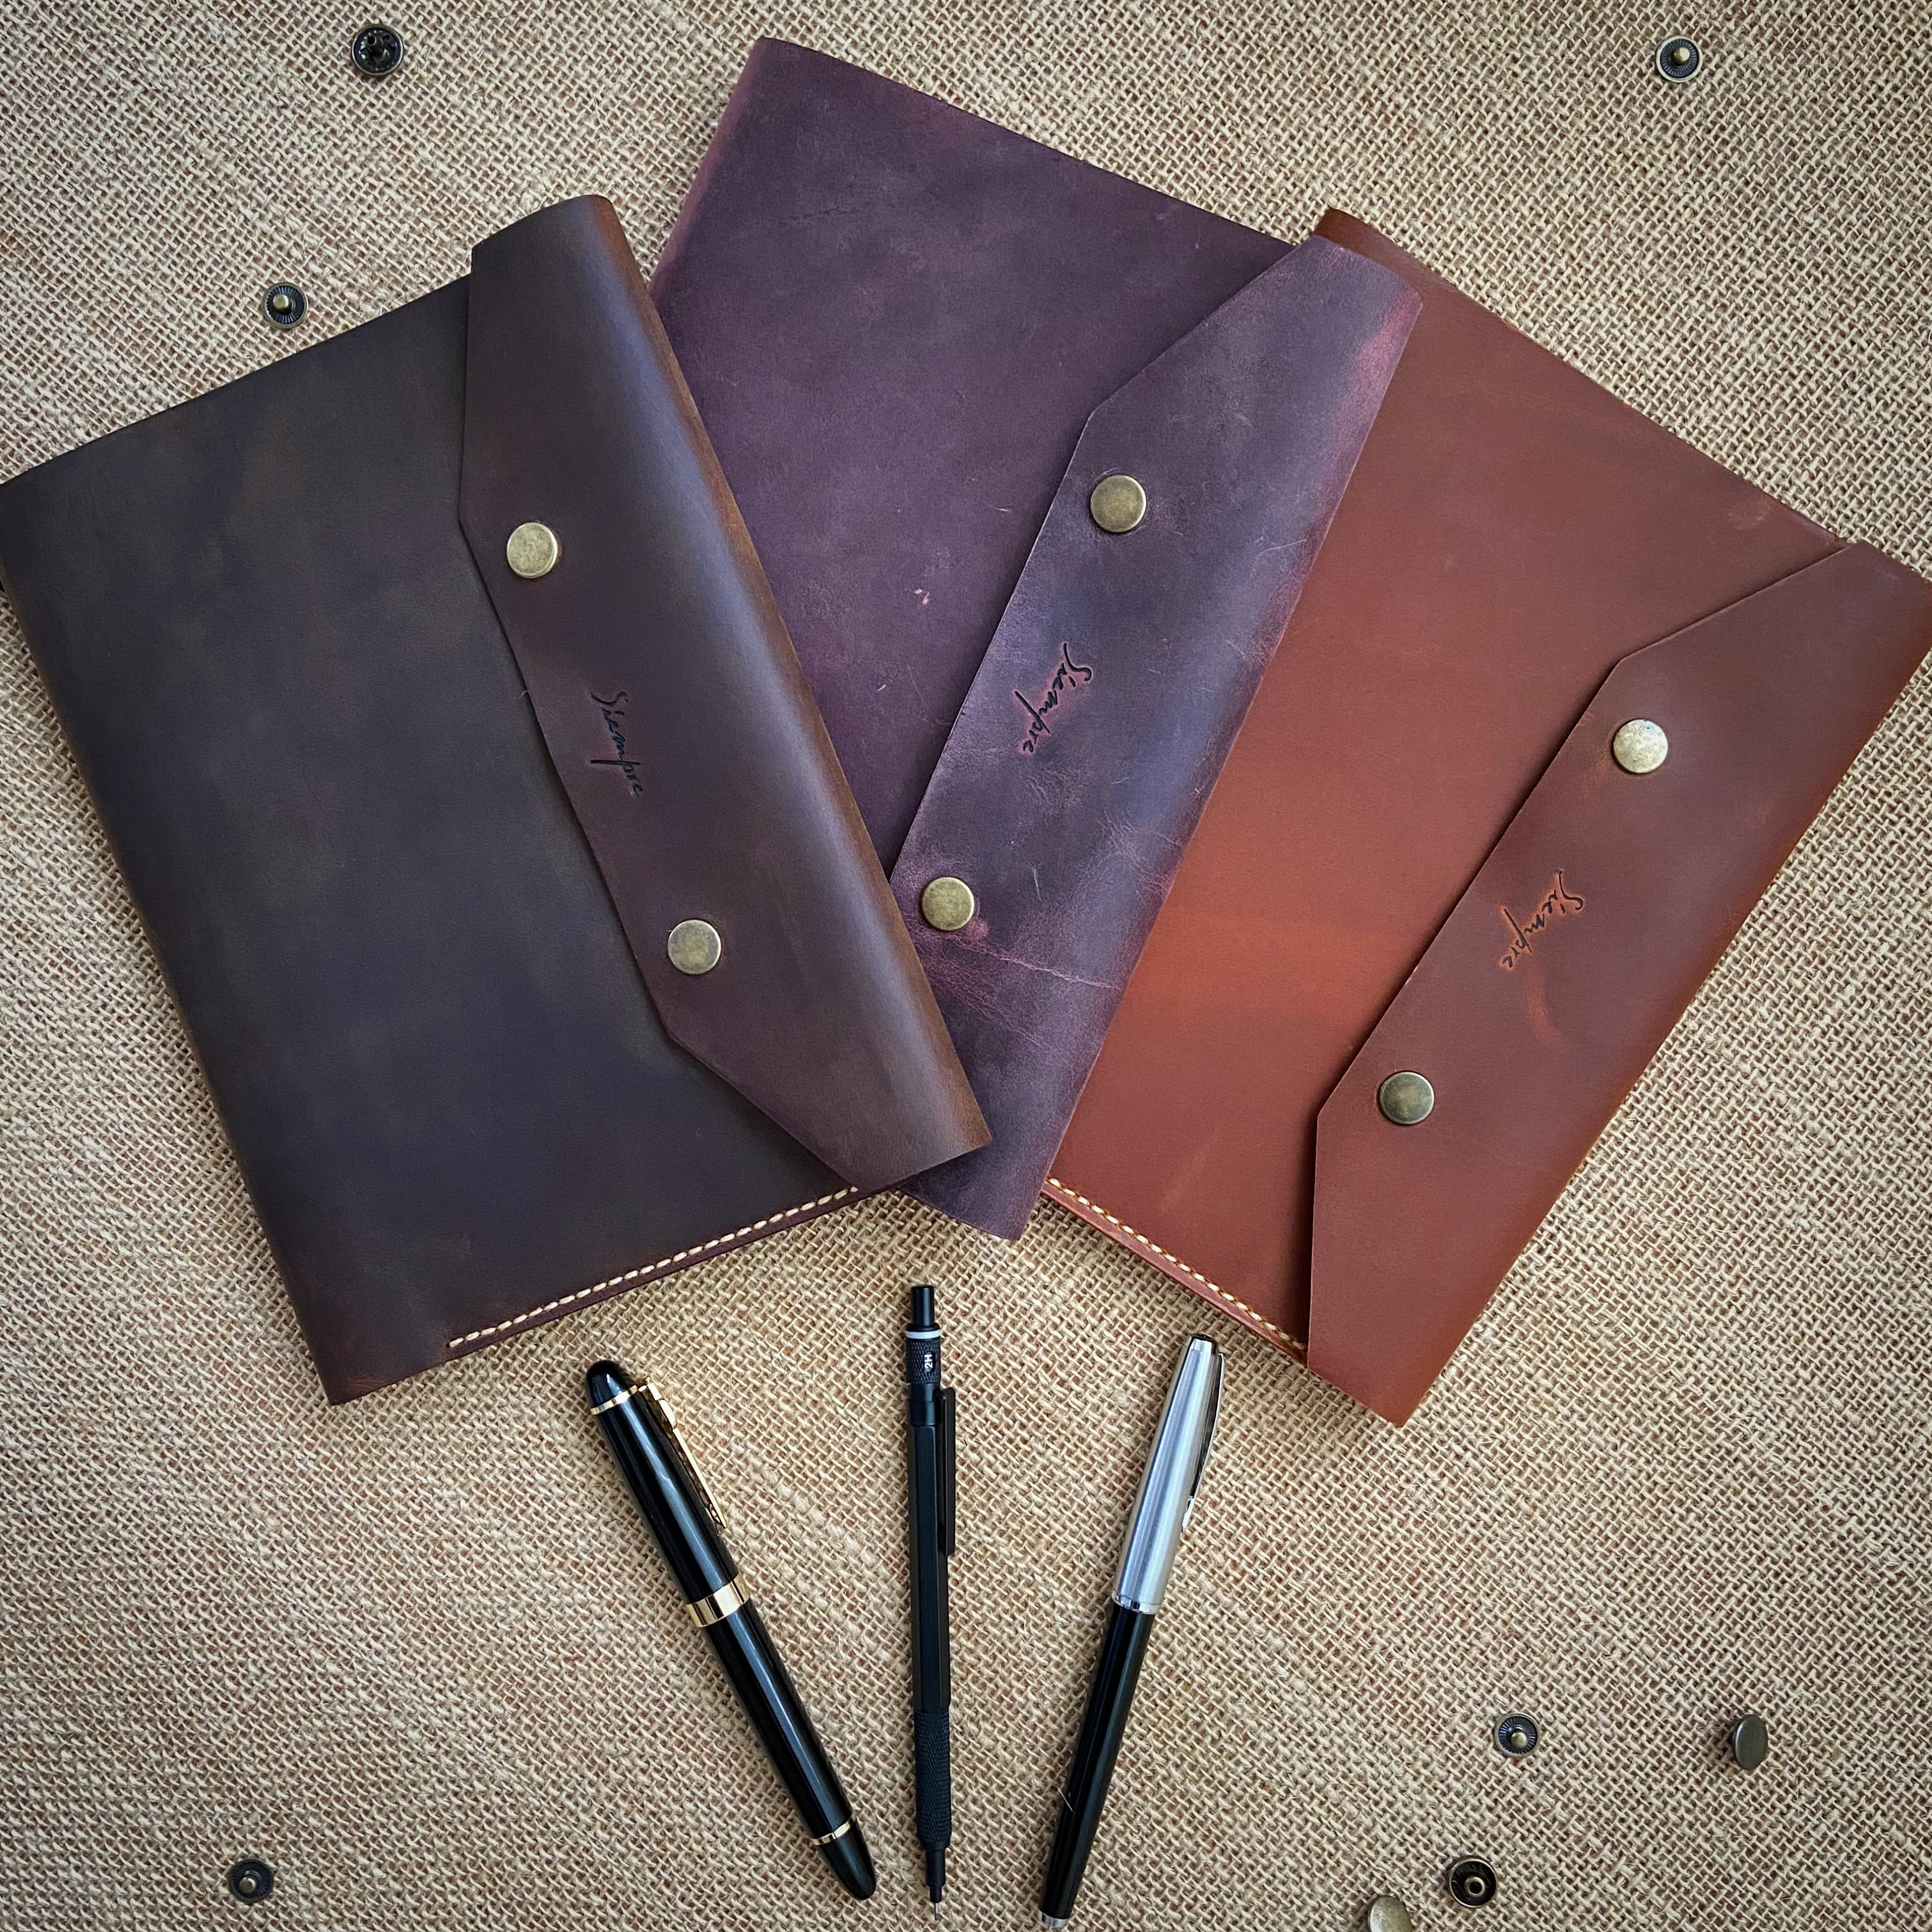 PERSONALIZED Handmade Leather A5 Organizer   Business Planner, Daily Organizer, Task Organizer, Notebook Father's Day Gift